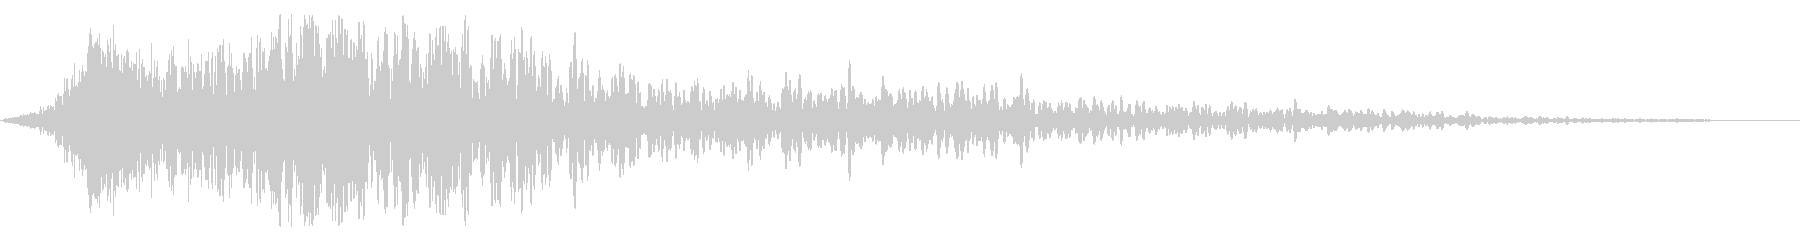 Impact sound (image of shock, gust)'s unreproduced waveform